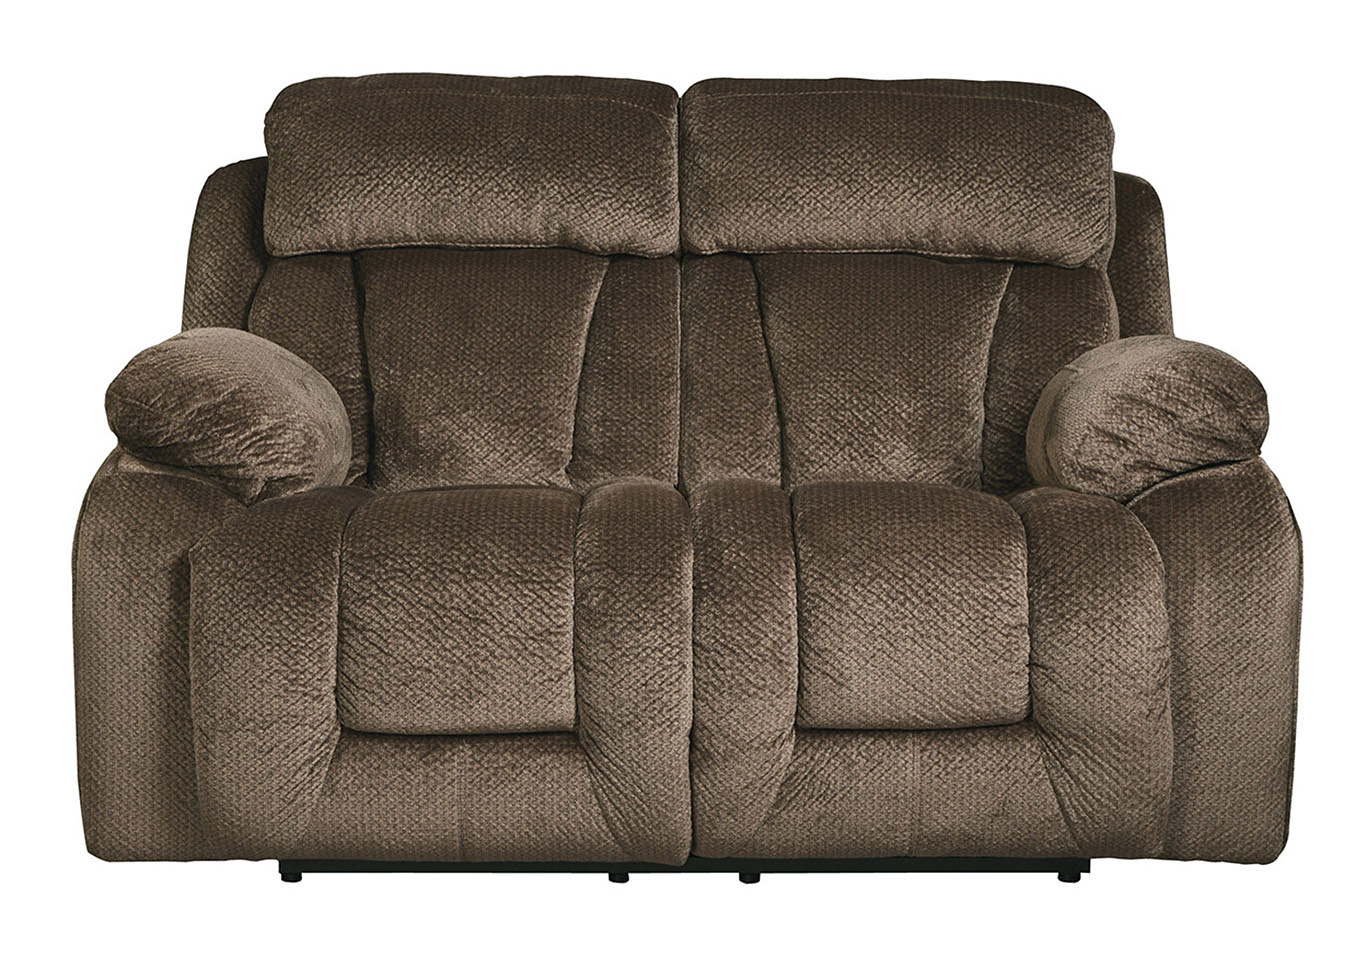 Stricklin Chocolate Power Reclining Loveseat,Signature Design By Ashley